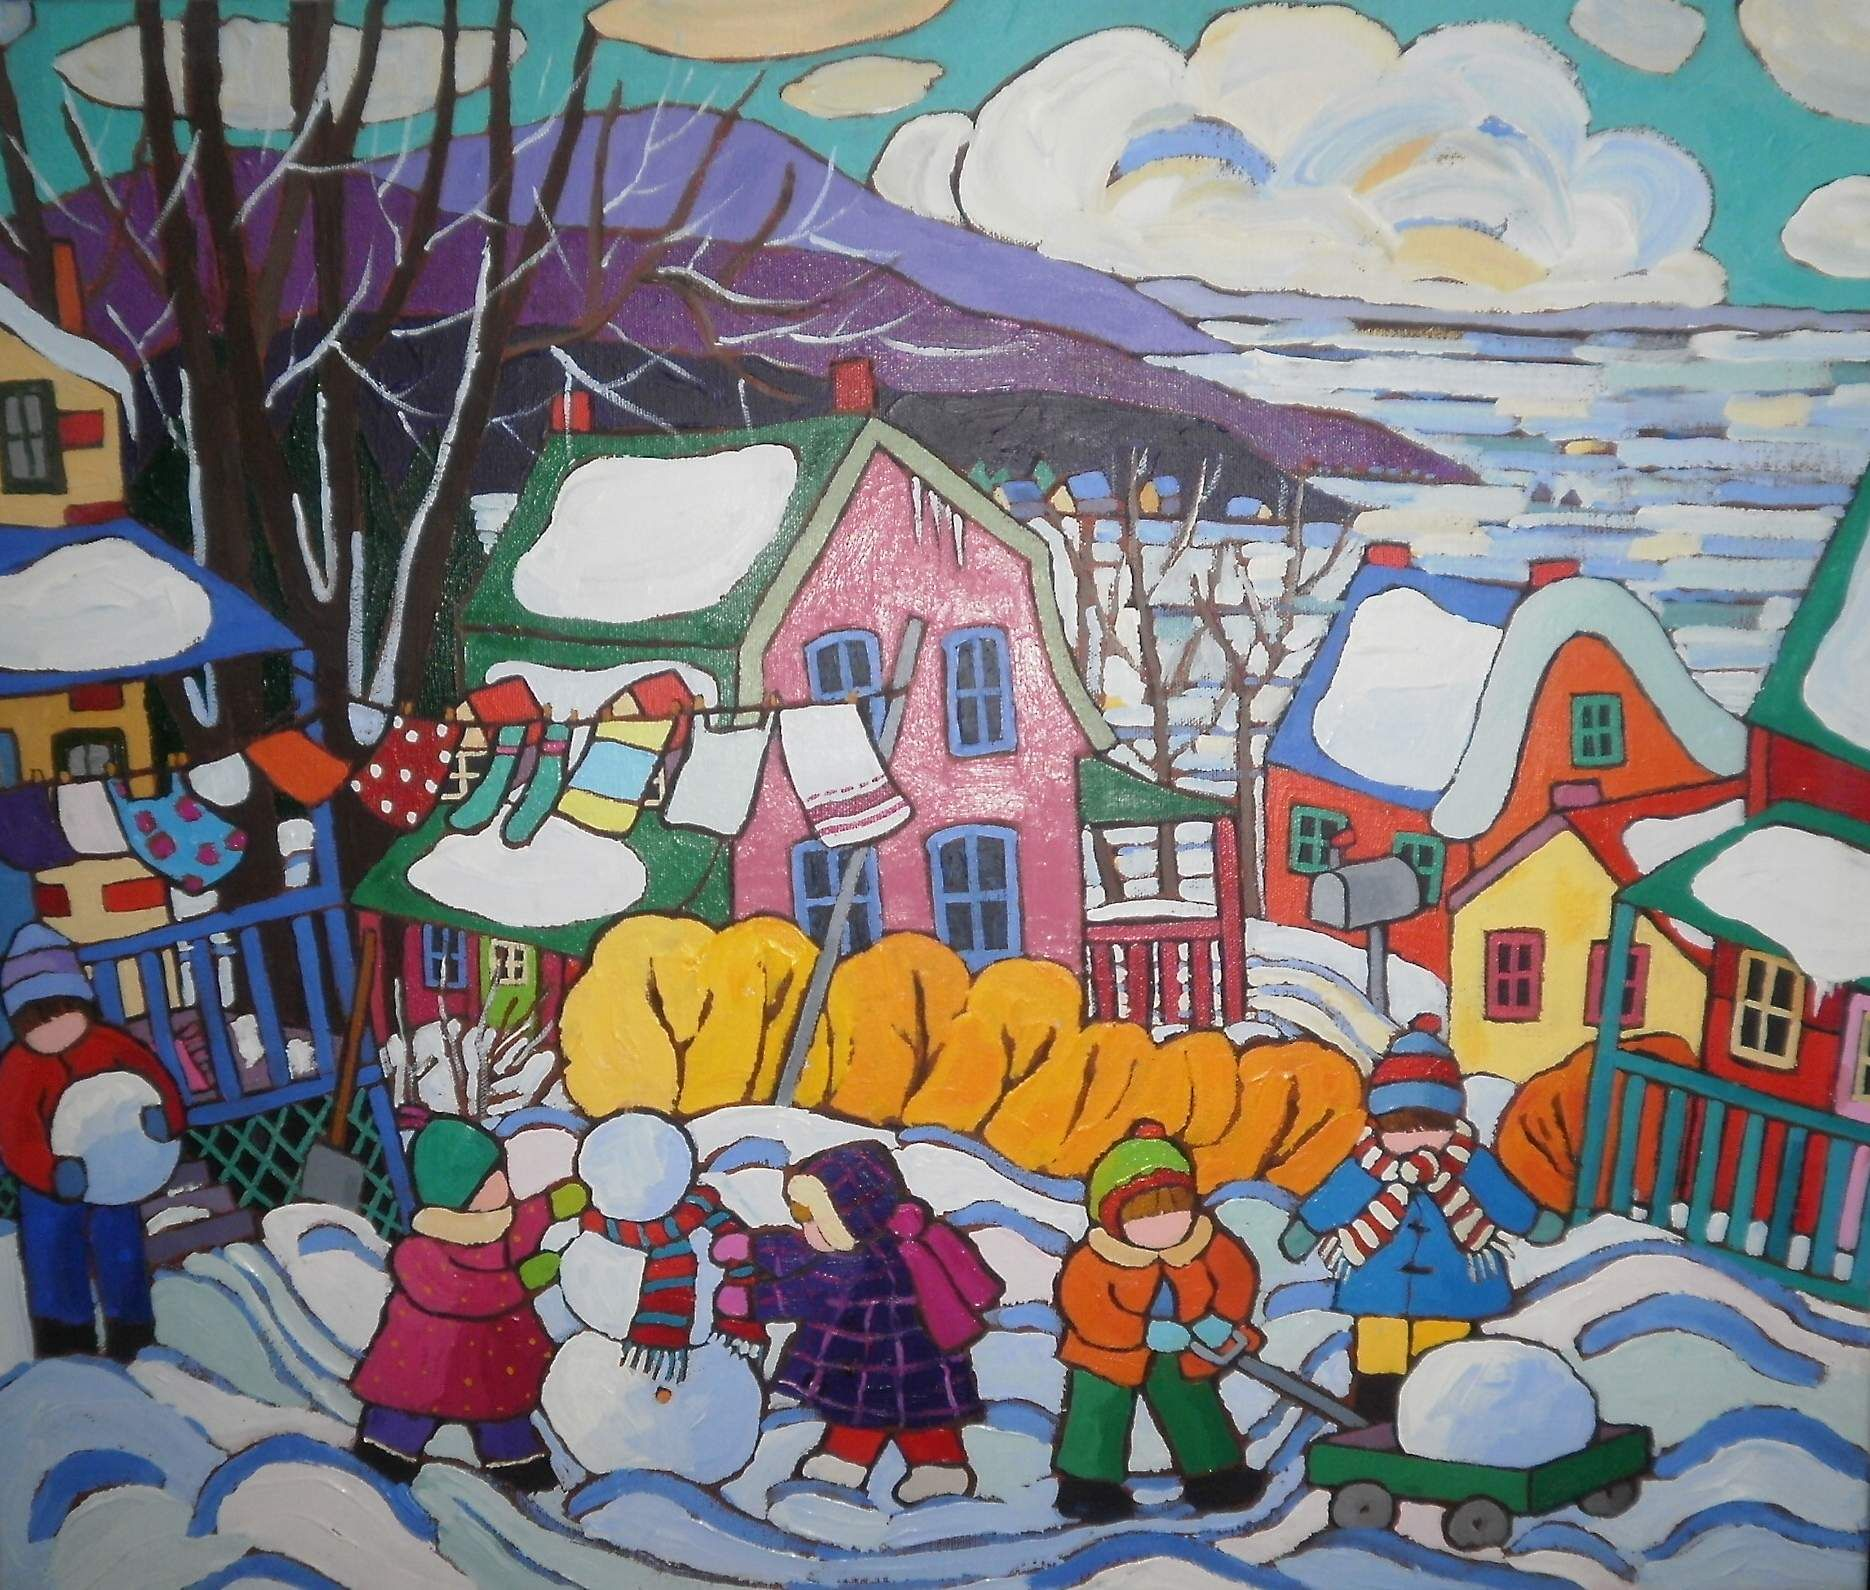 'the snow is so delightful!' selected for 2012 children's wish holiday card